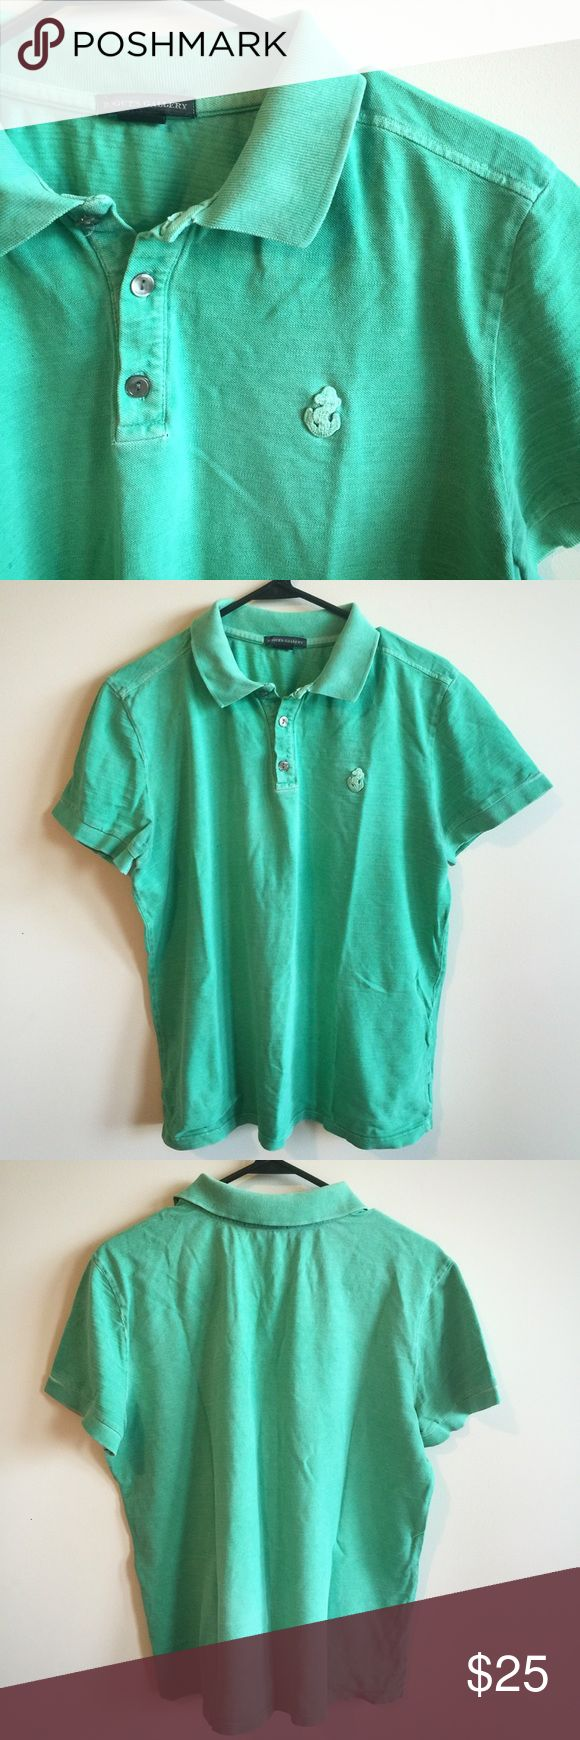 """Men's Rogues Gallery Green Polo Shirt Men's faded, rugged green short sleeve polo shirt by Rogues Gallery. Size Large. 100% Cotton. Good condition. Armpit to armpit: 22"""". Length: 25"""". Rogues Gallery Shirts Polos"""